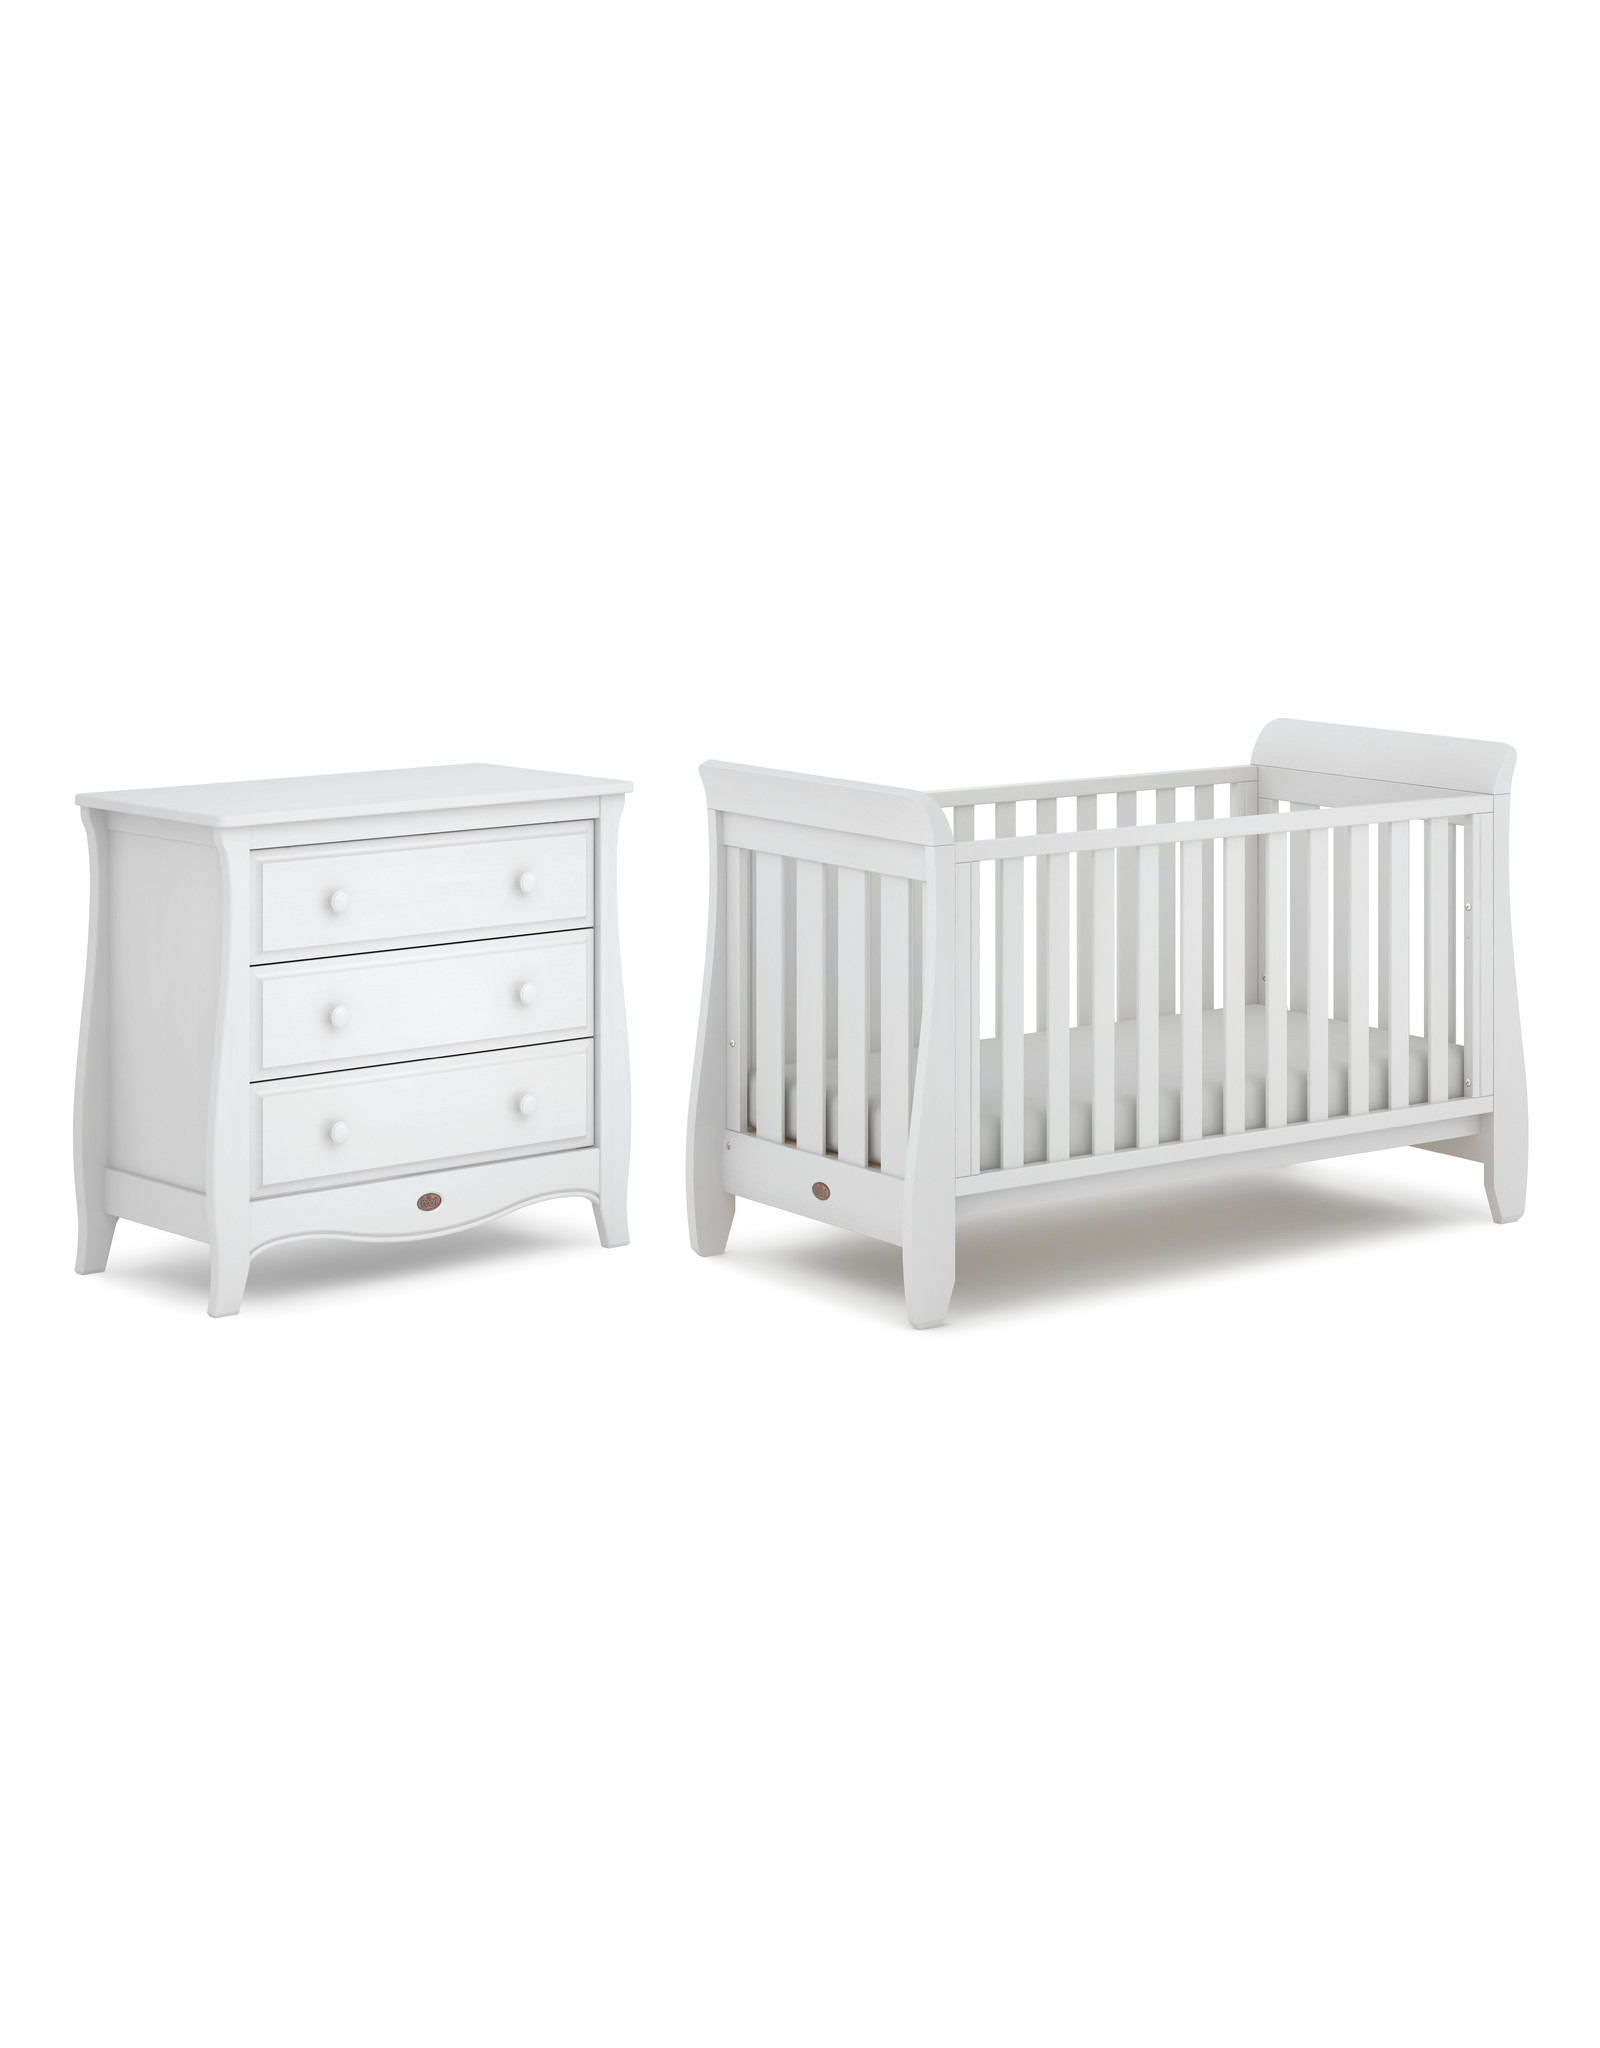 Boori Sleigh Chest of Drawers (Smart Assembly)- White